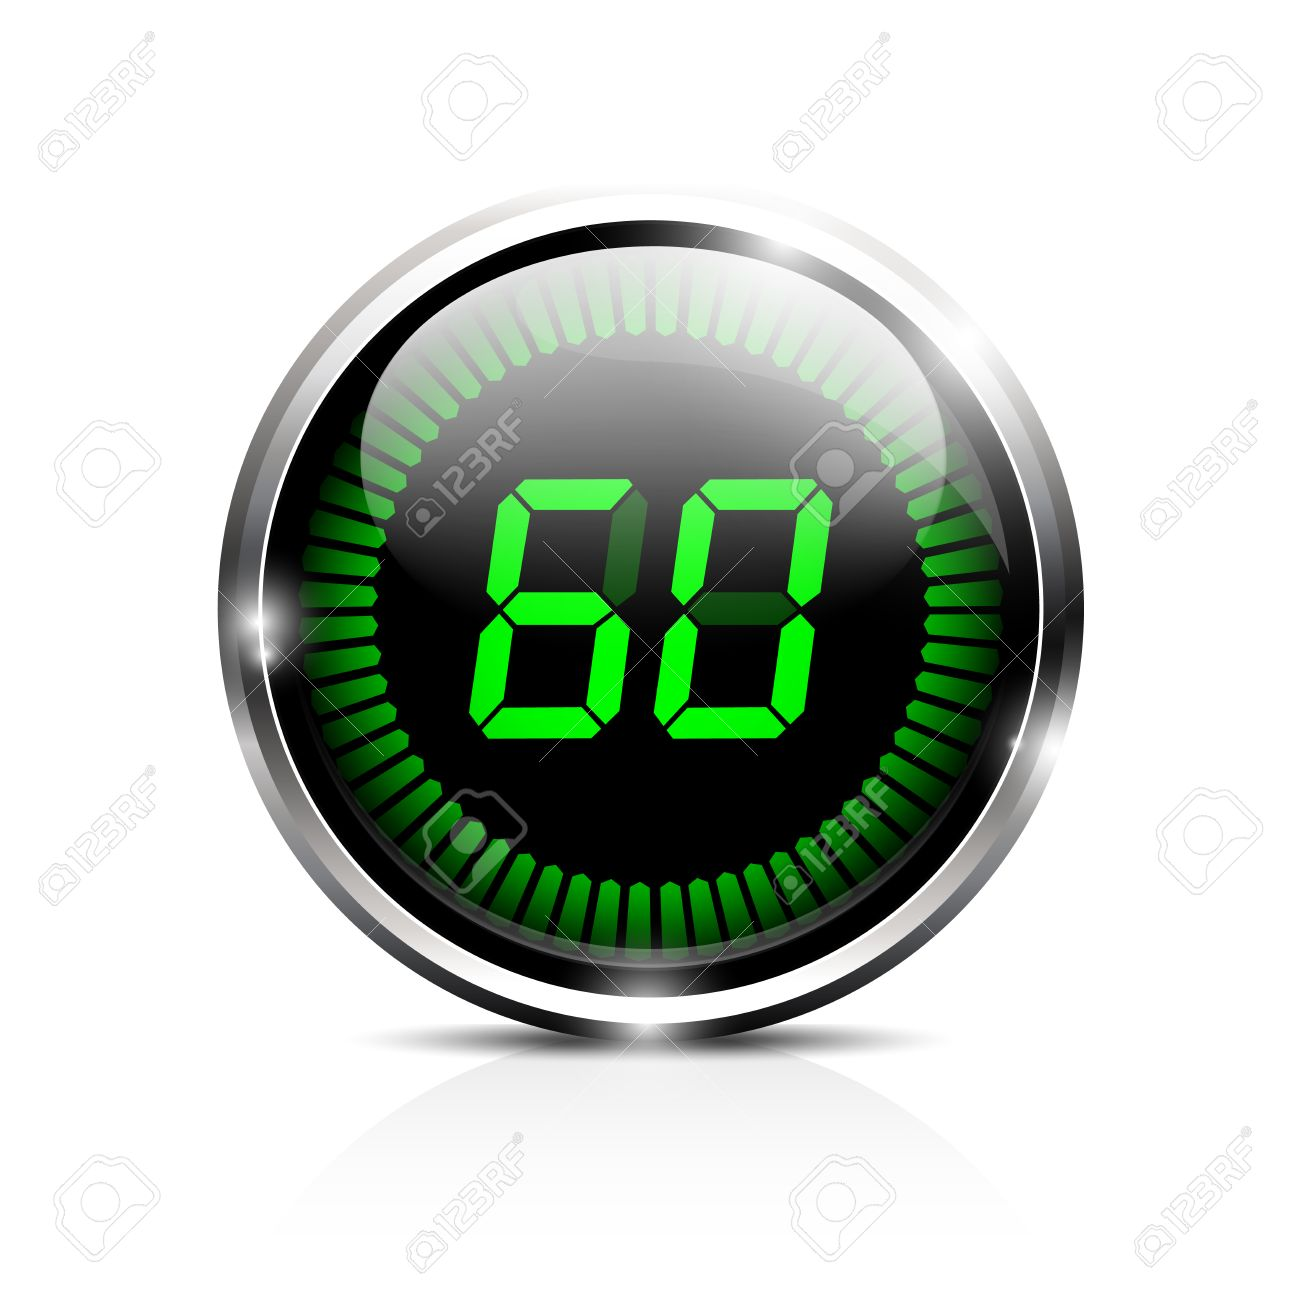 24017659-Electronic-brilliant-timer-60-seconds-Stock-Photo.jpg